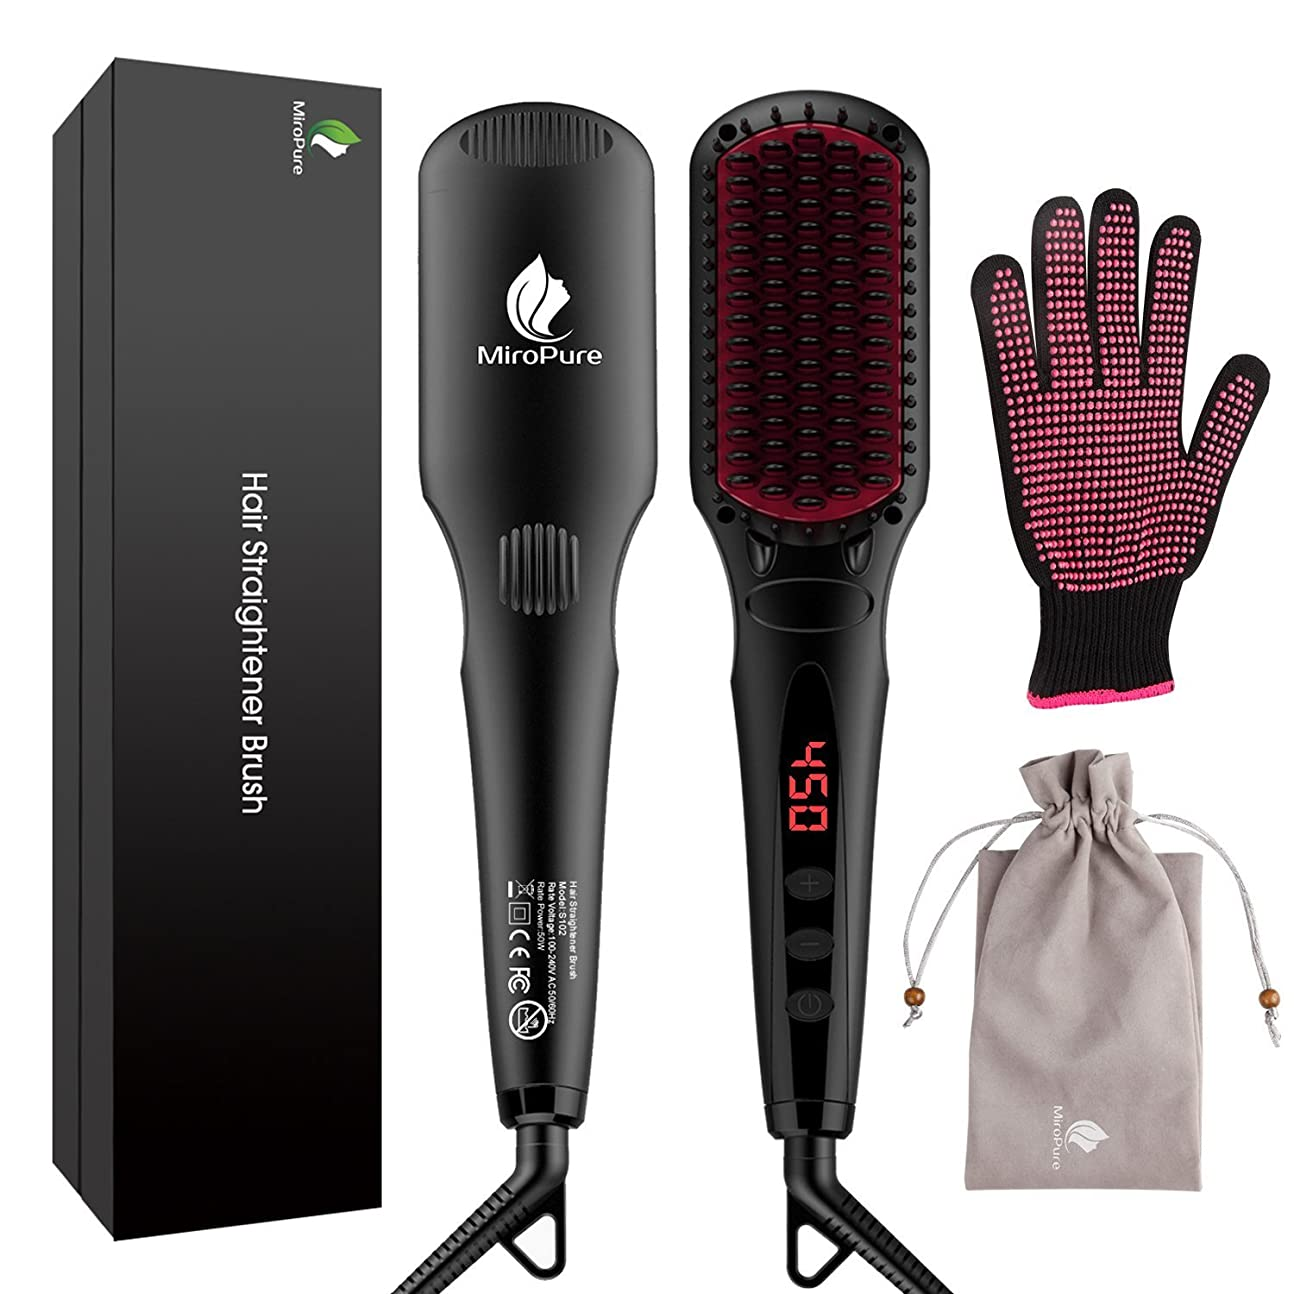 極地仮説請負業者MiroPure 2 in 1 Ionic Hair Straightener Brush ヘアストレートヘアブラシ with Heat Resistant Glove and Temperature Lock Function (並行輸入品)